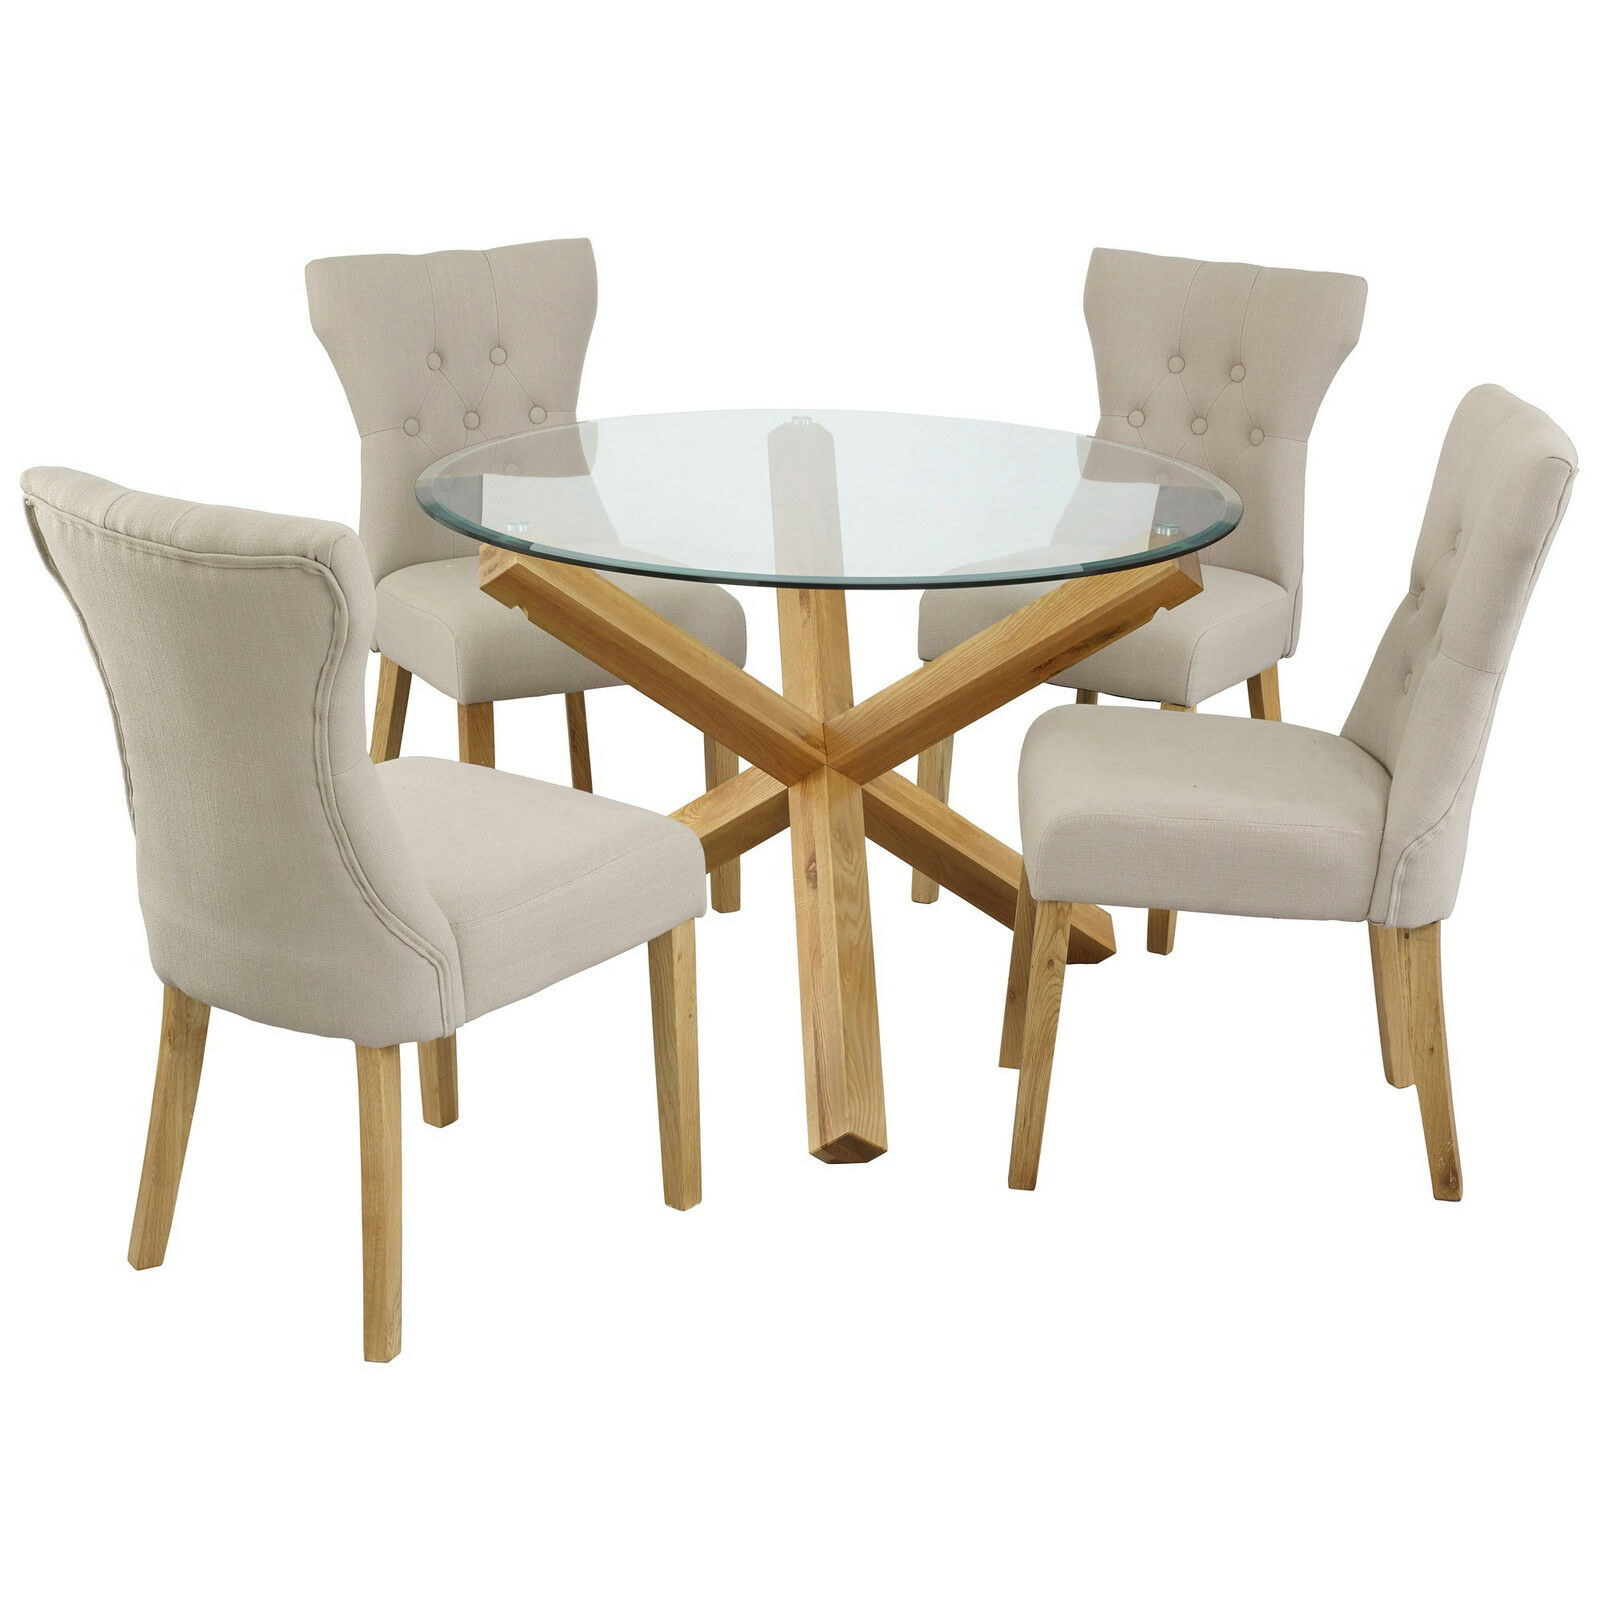 Solid oak and glass dining table round 42 for Round table 99 rosenheim